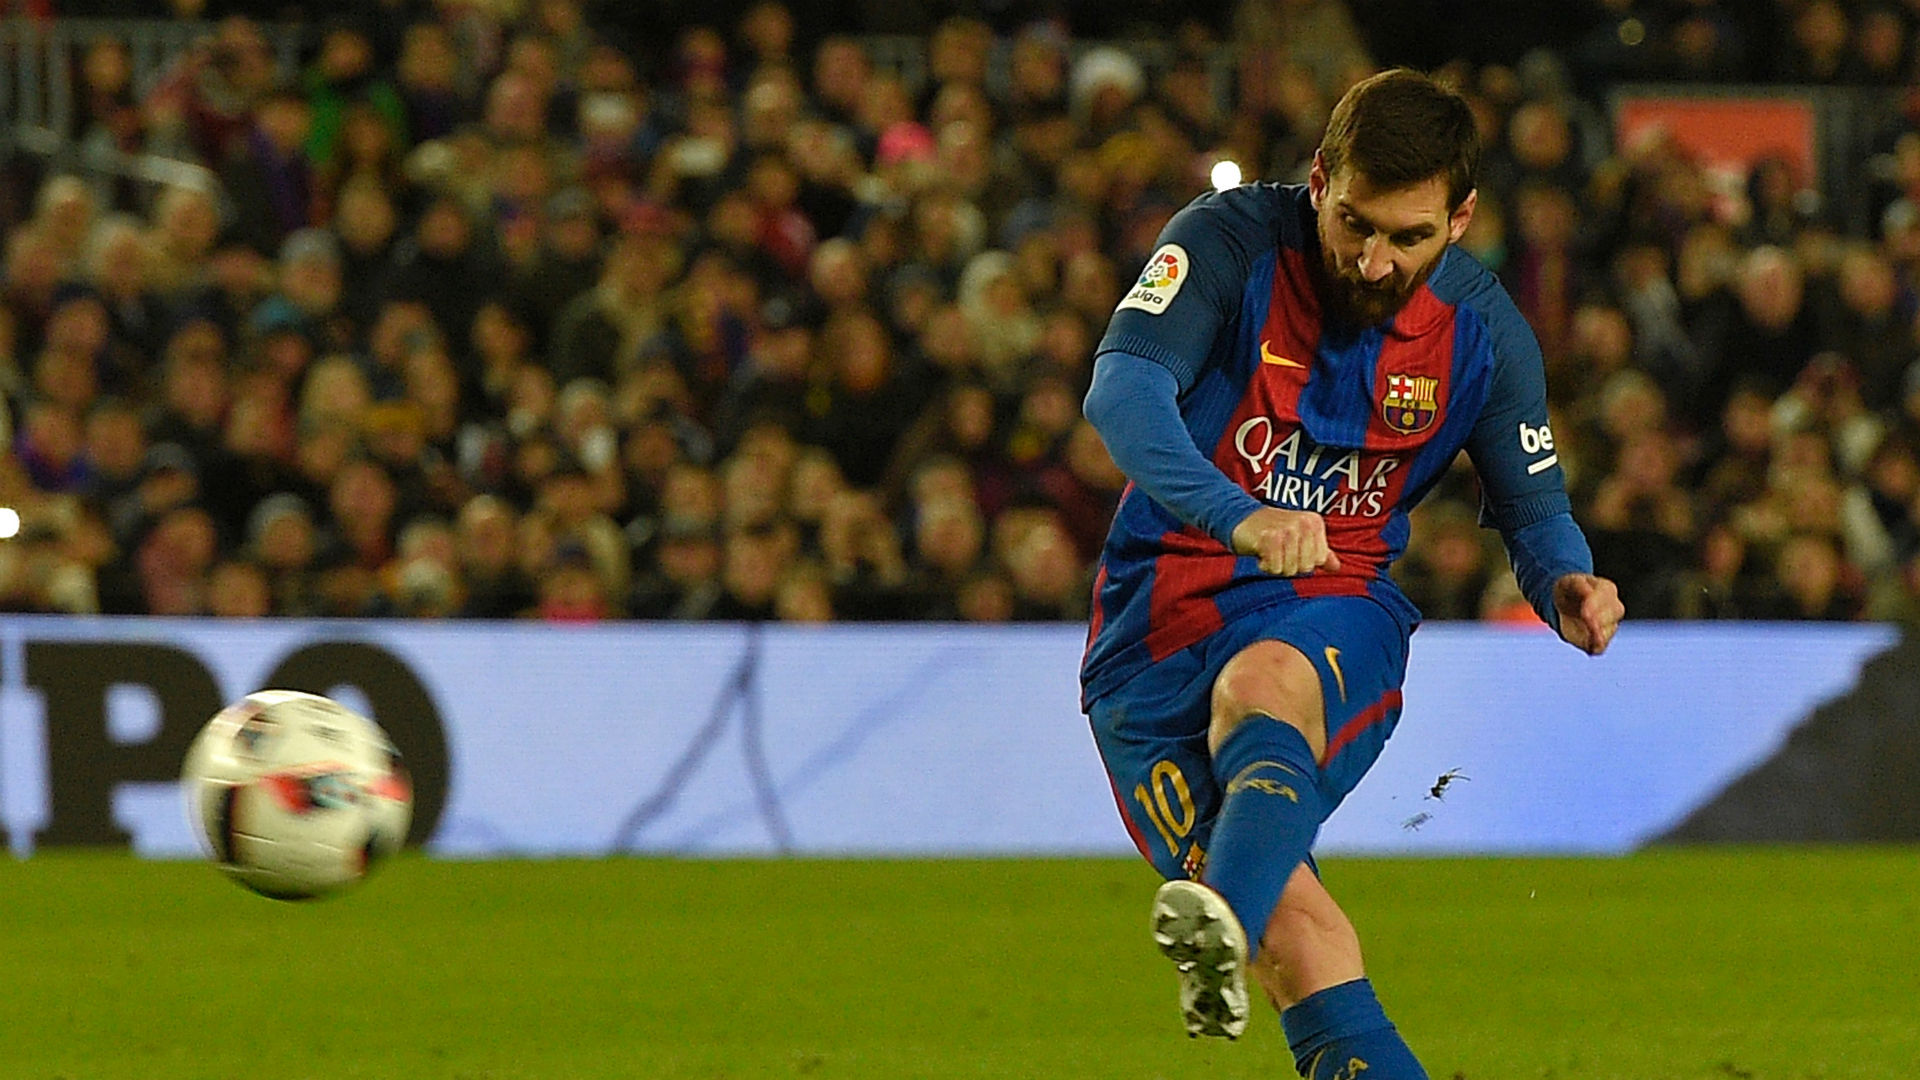 Barcelona to find the formula for new Messi deal